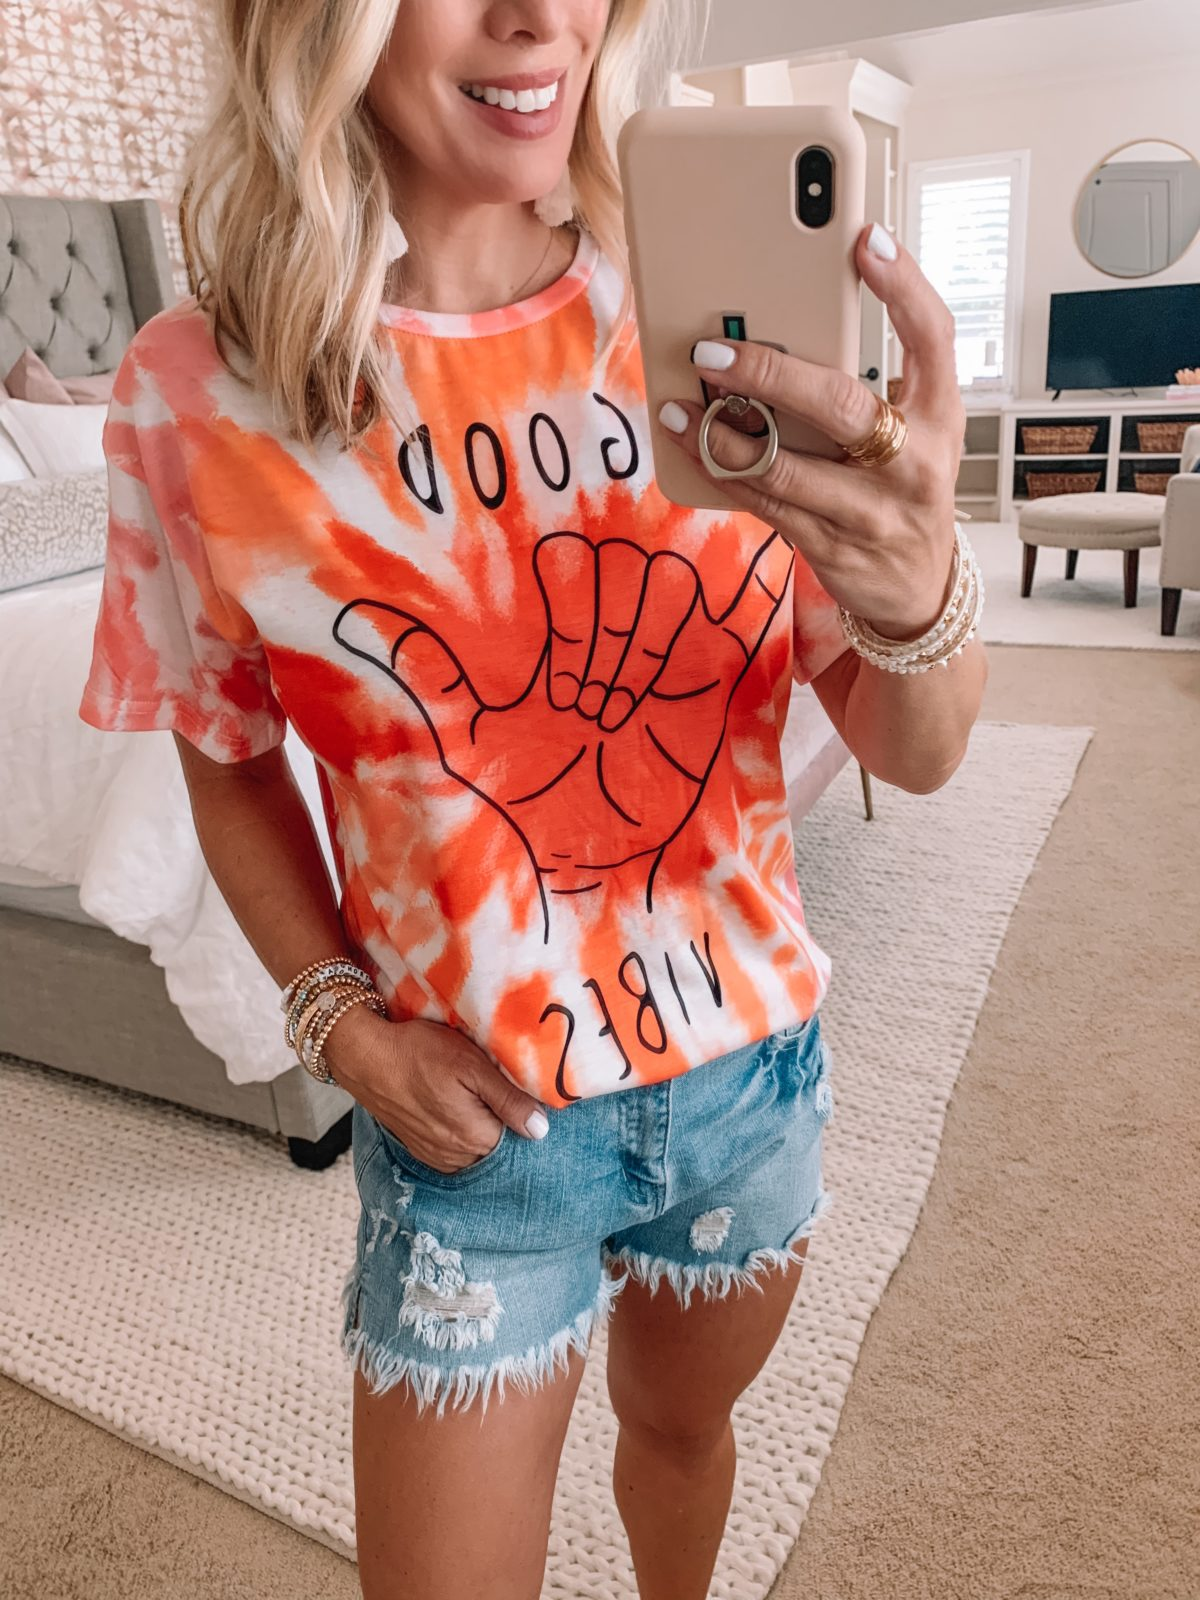 Amazon Fashion Finds, Good Vibes Tee, Denim Shorts